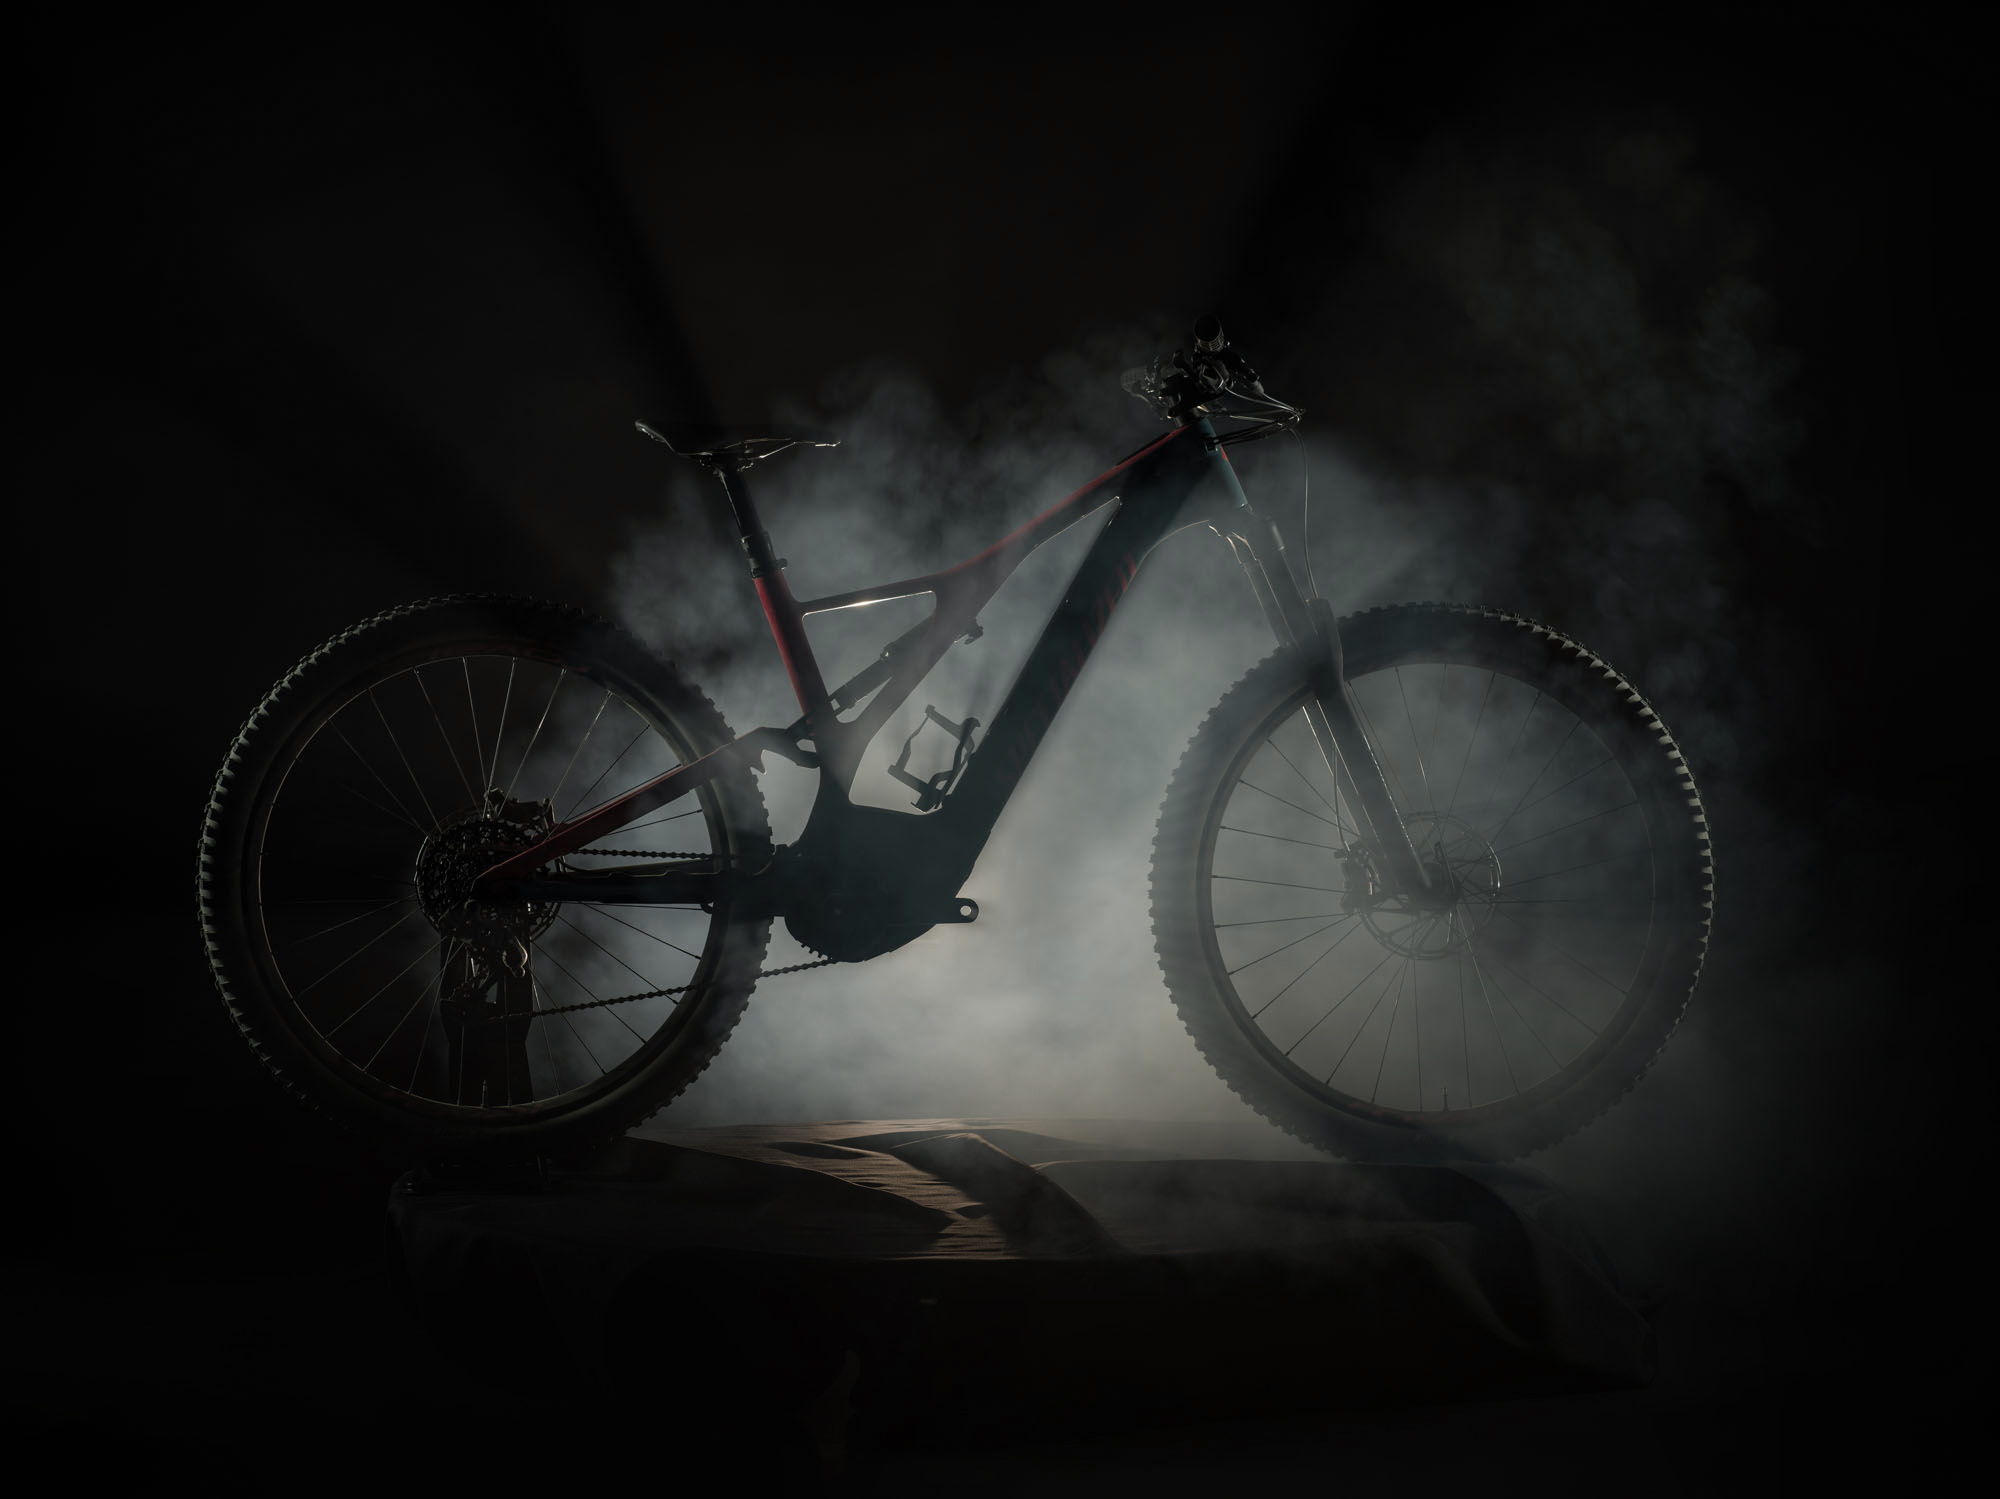 Is it 2028? Introducing the new Specialized Levo Turbo, a bike that